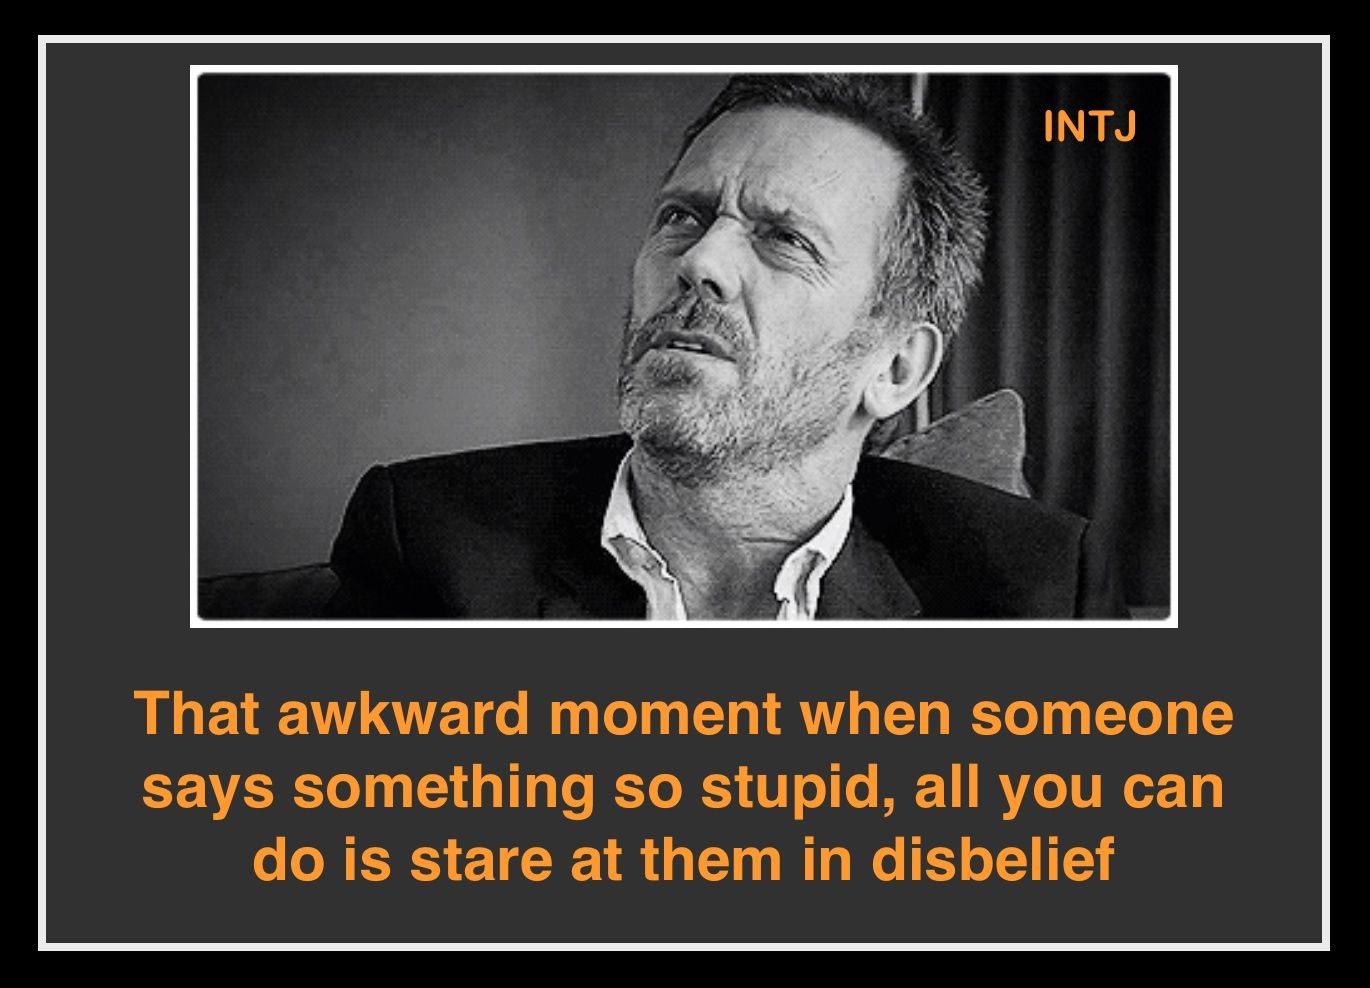 INTJ - That awkward moment when someone says something so stupid, all you can do is stare at them in disbelief.